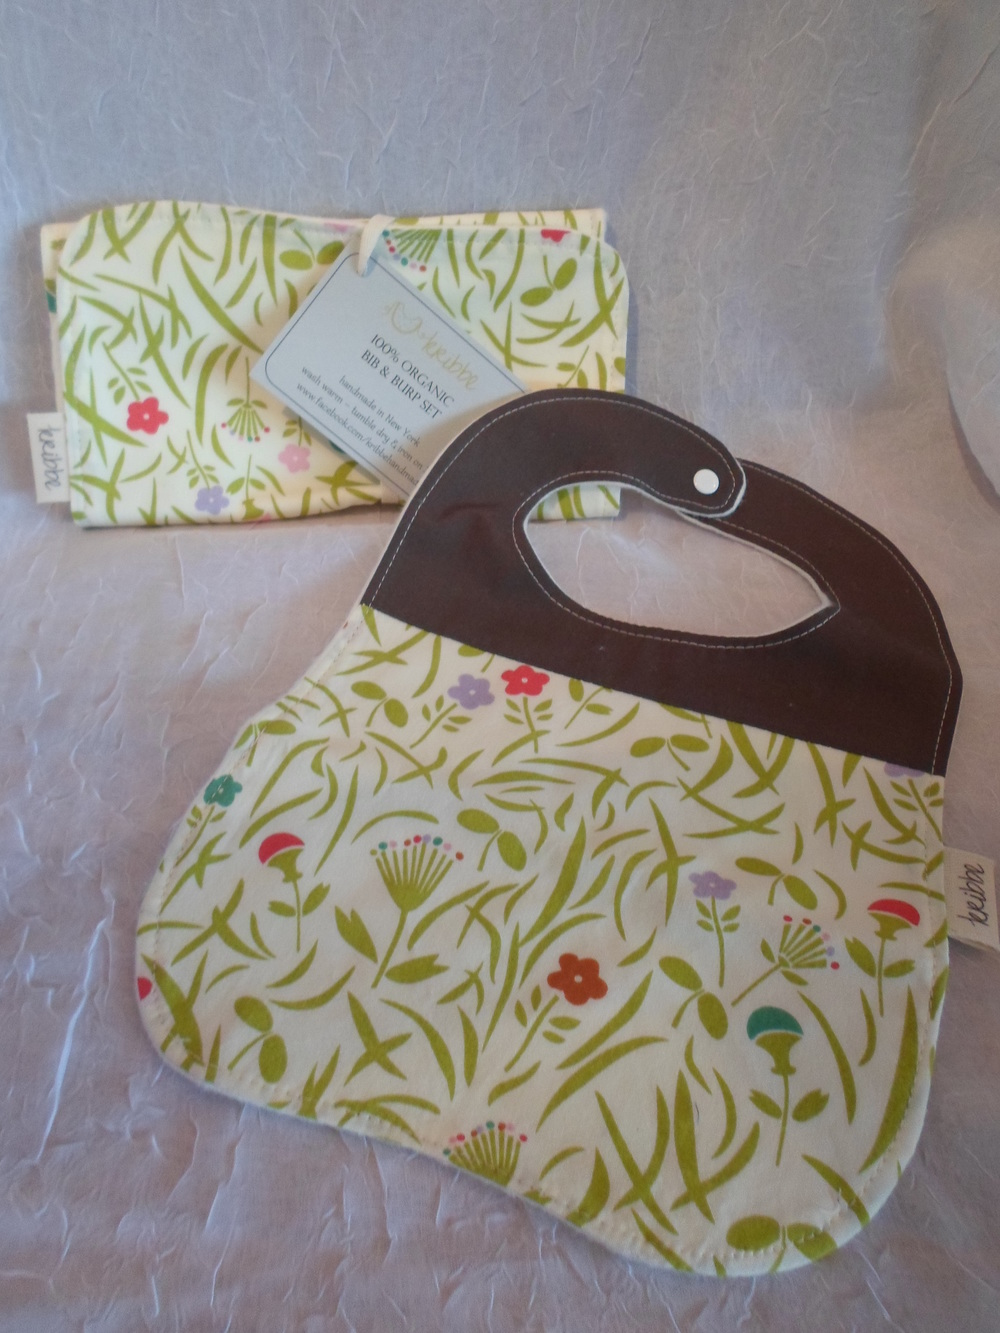 Kribbe Organic Burp & Bib Set Locally Handmade $27 Wants 1 - PURCHASED